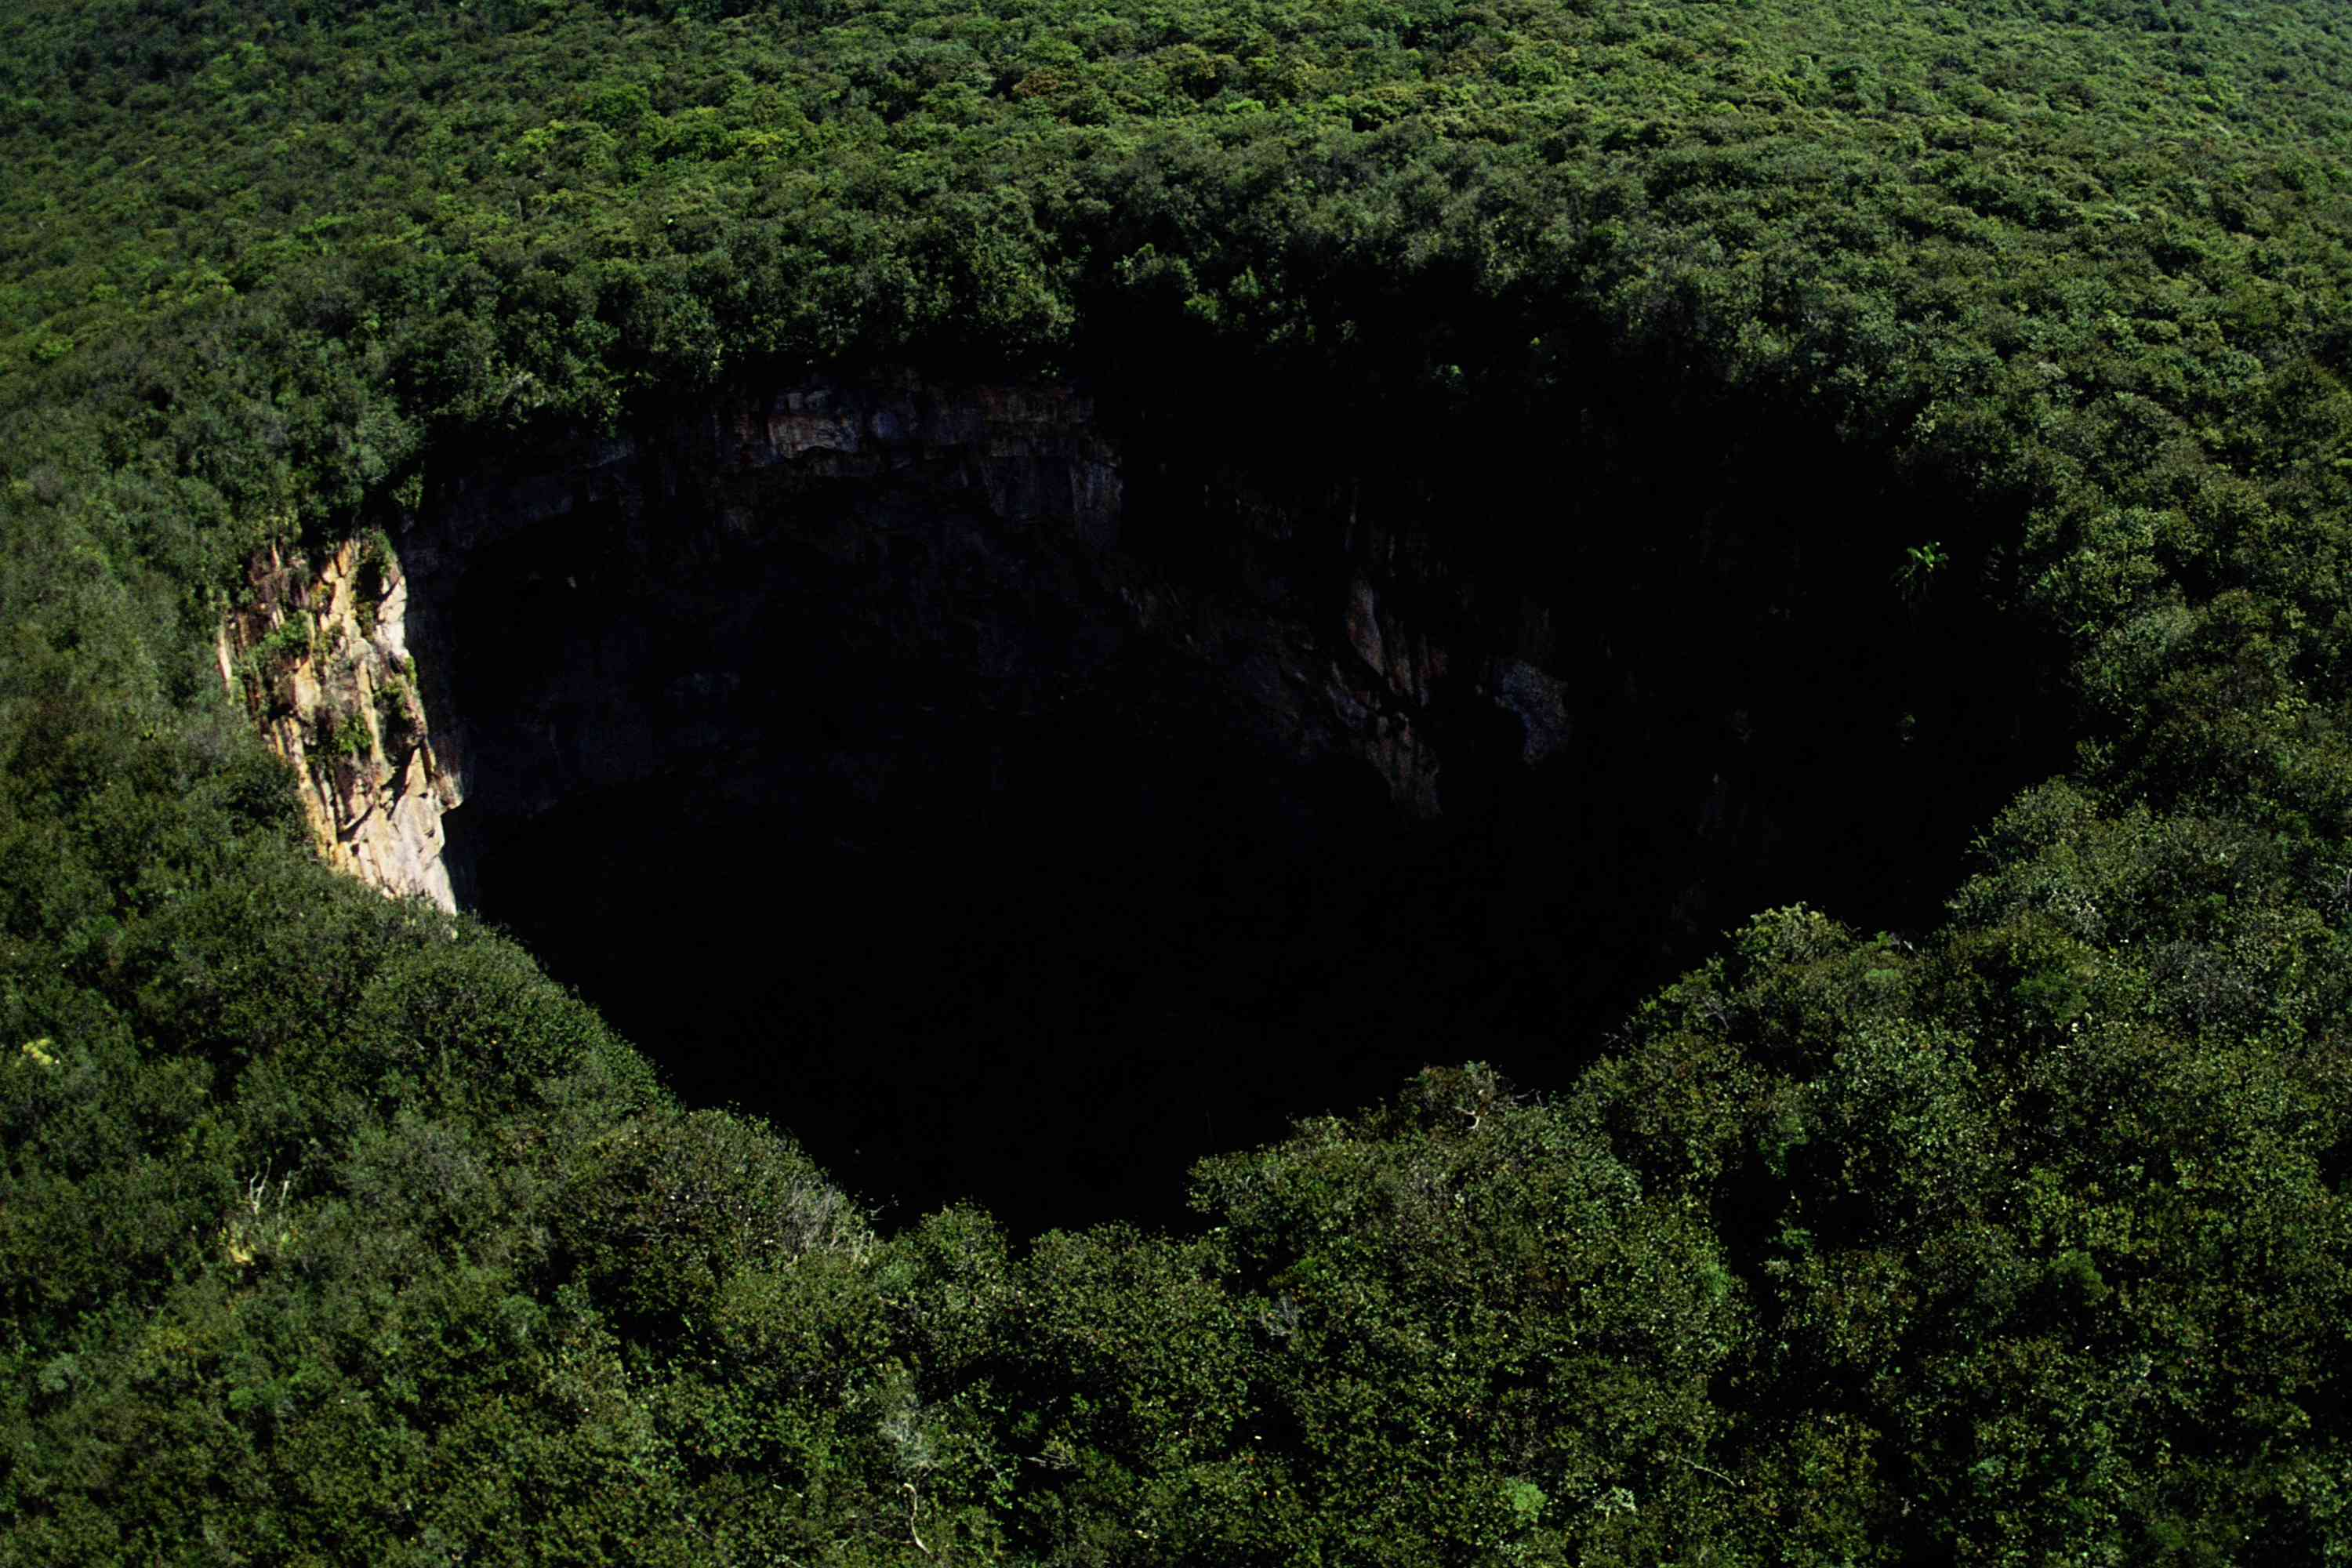 Sima Humboldt is surrounded by a thick forest in remote southwest Venezuela